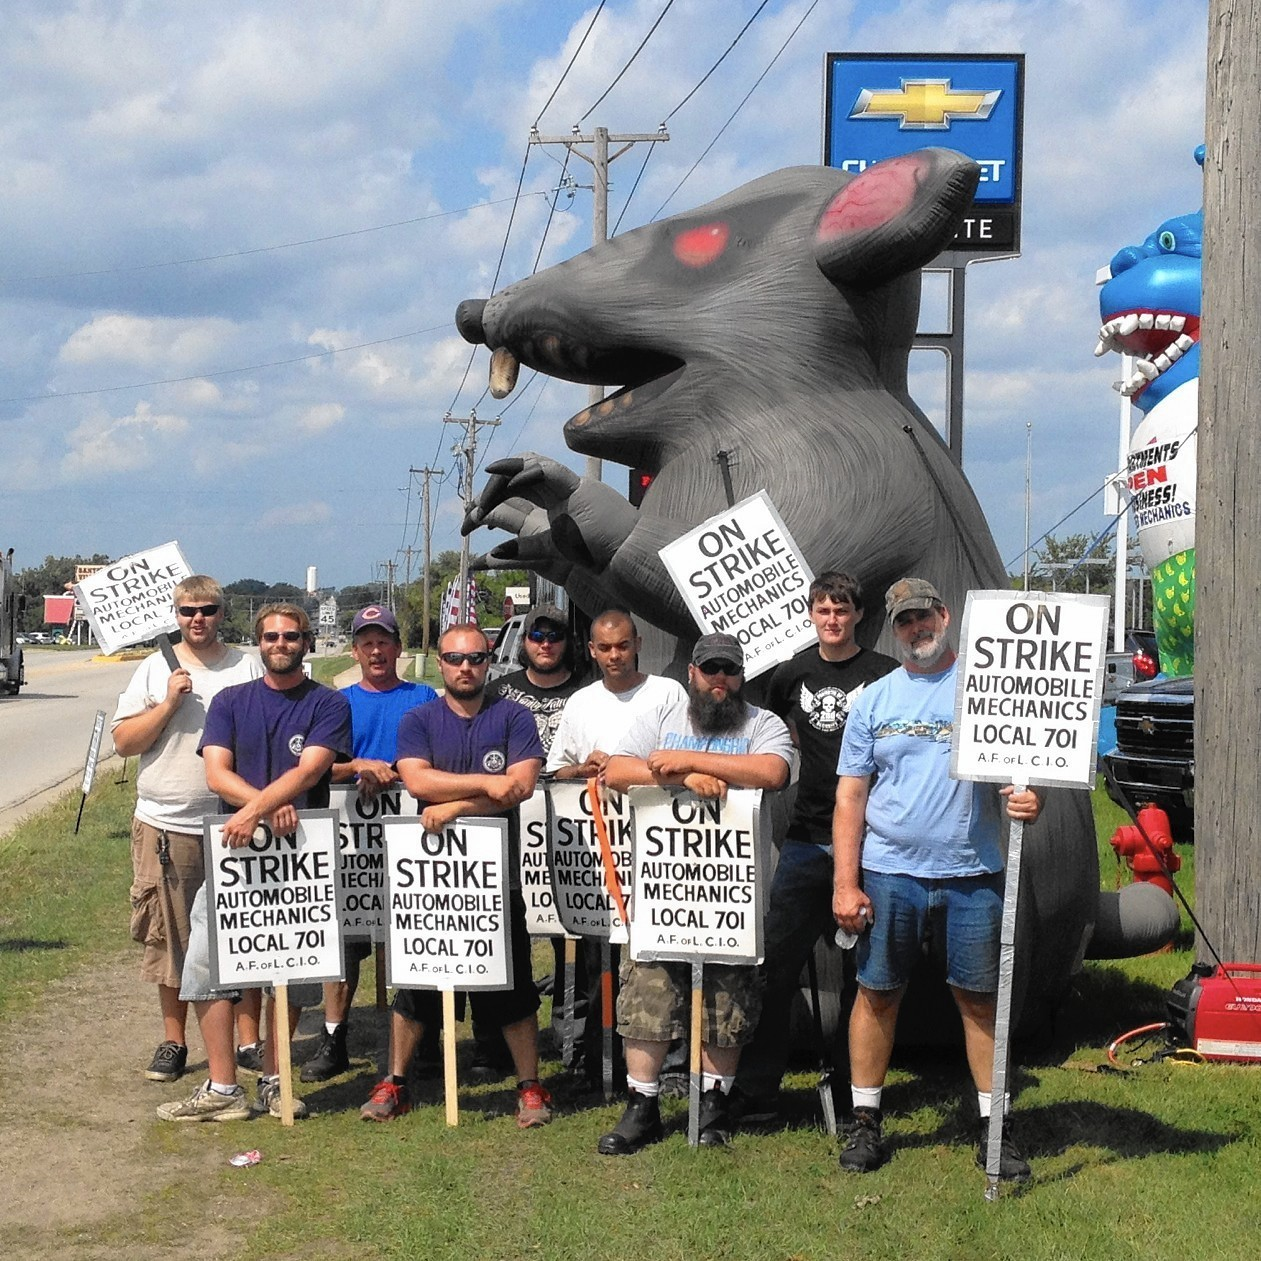 Lengthy strike settled at al piemonte chevrolet in east dundee elgin courier news